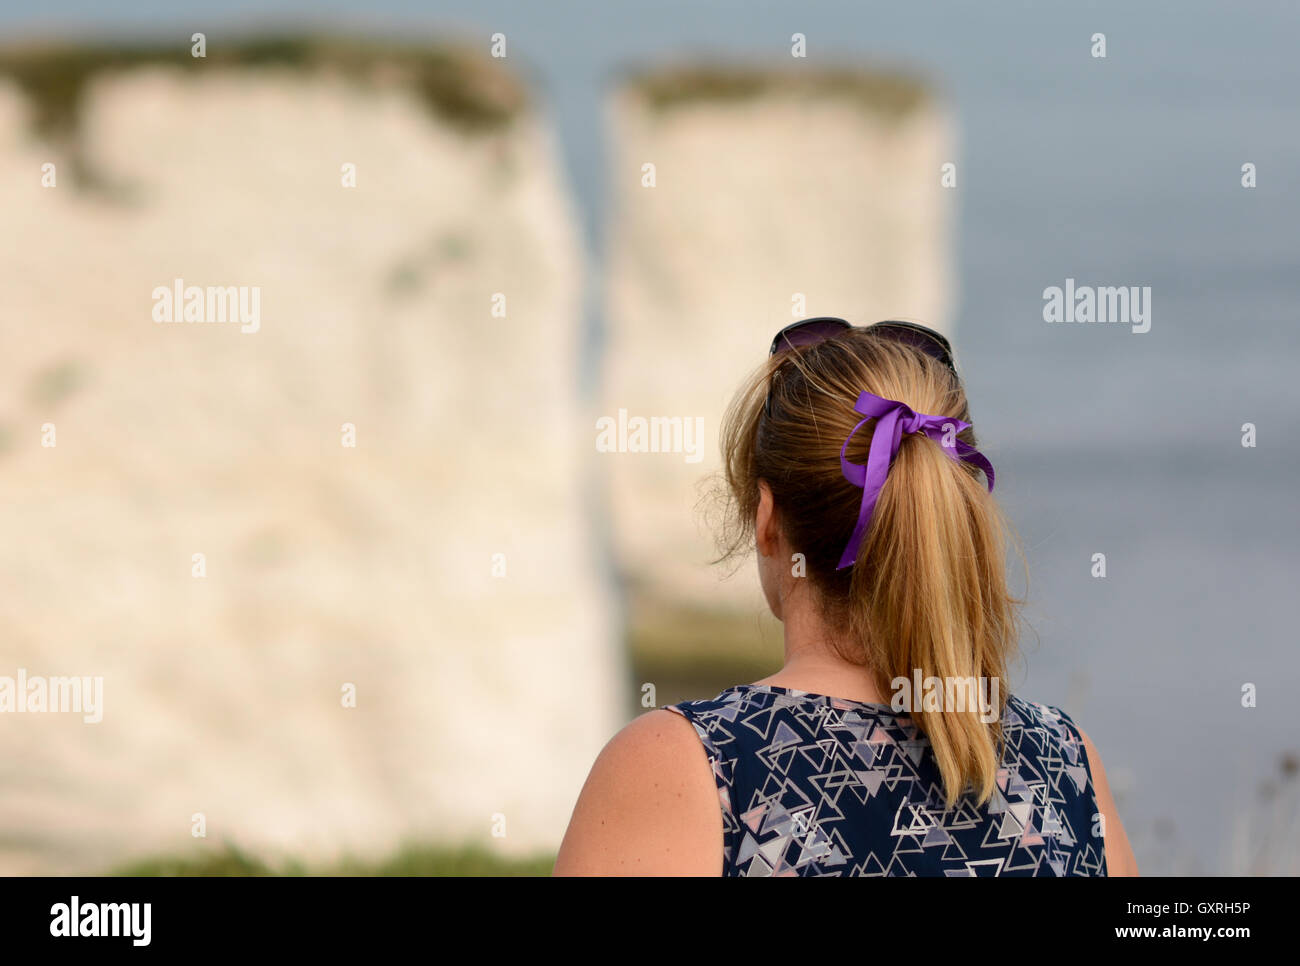 Woman looking out to see over rocks looking pensive with a purple ribbon and pony tail. - Stock Image